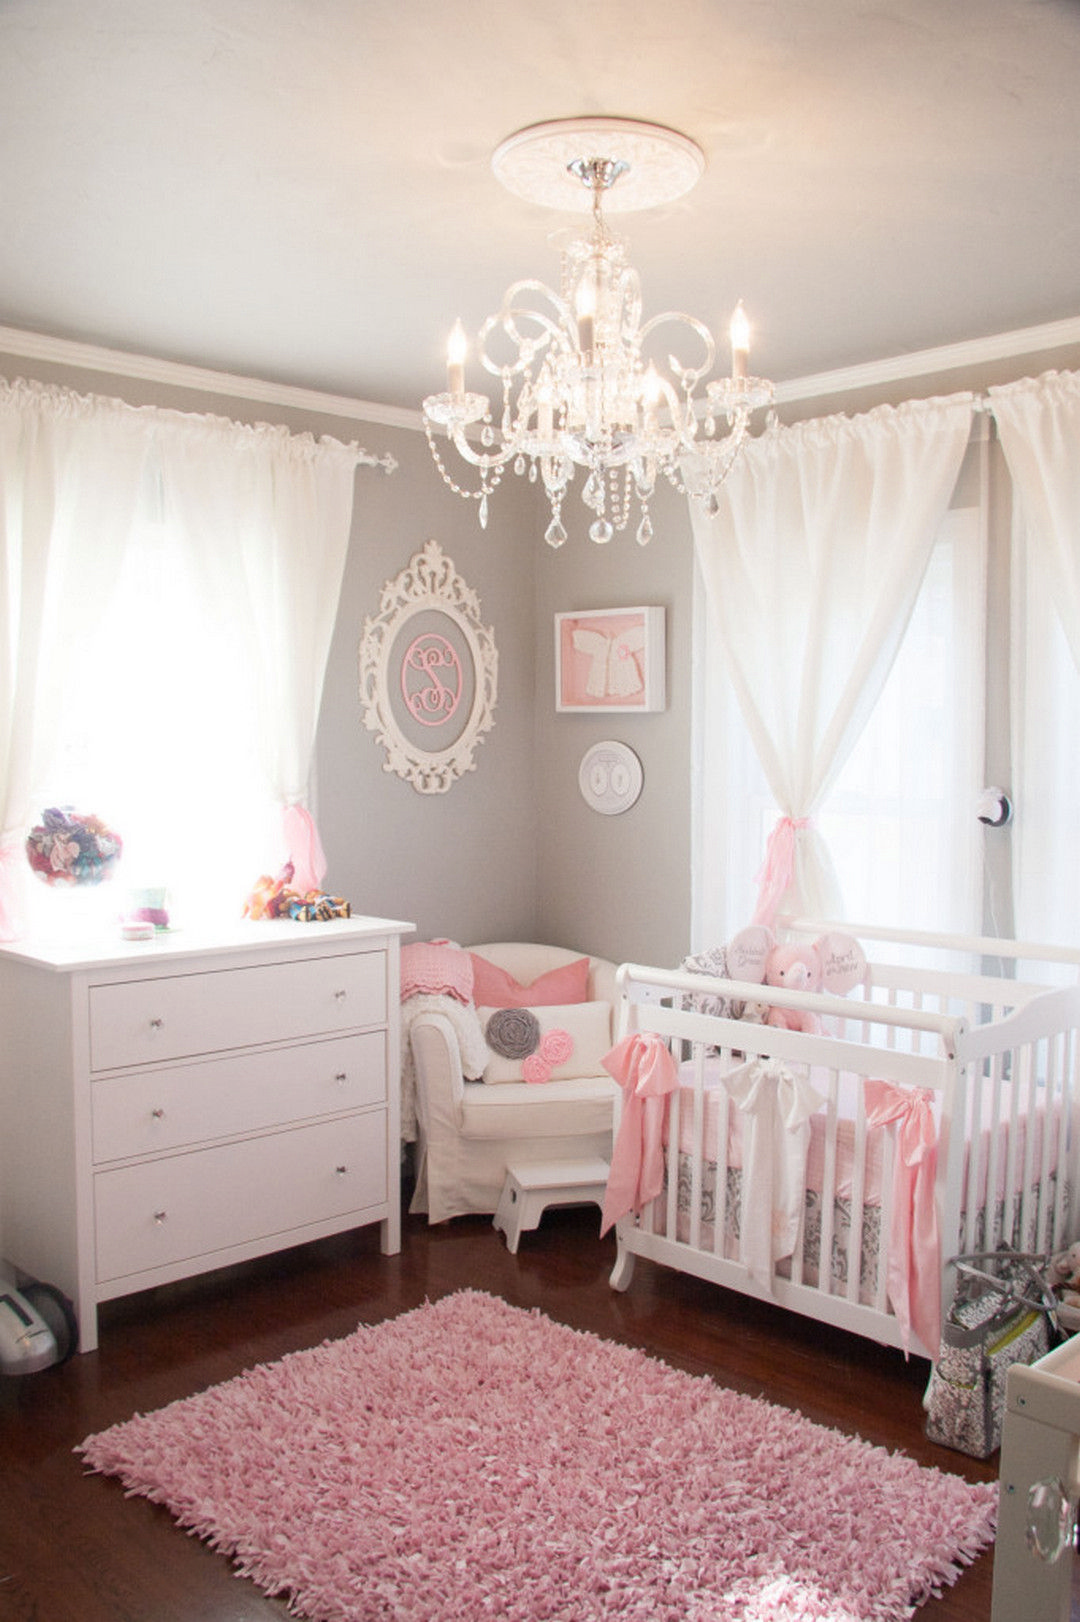 Baby Girl Bedrooms Ideas Room For Baby Girl, Baby Girl Bedroom Ideas, Baby Nursery Ideas For Girl,